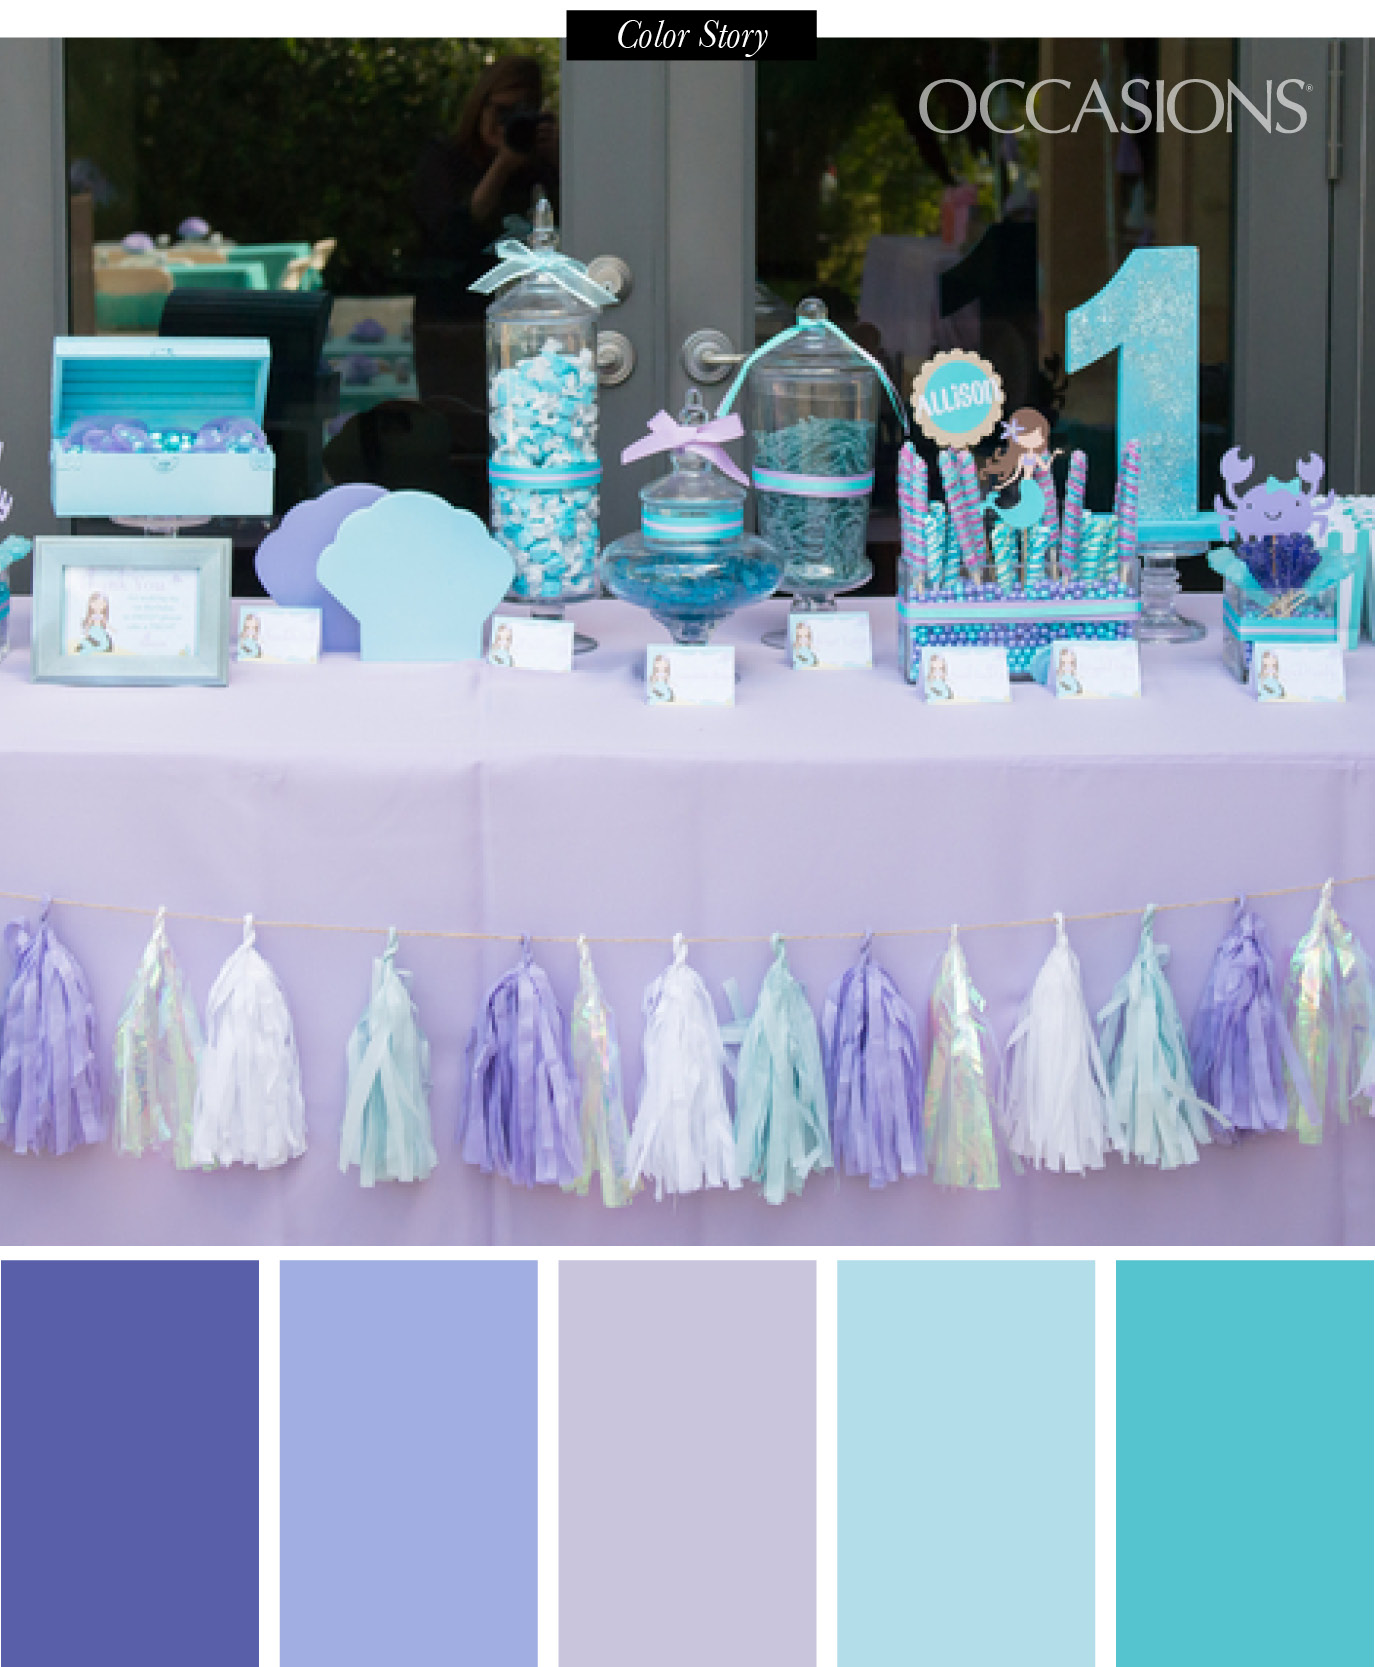 blue color themed birthday party ; Color-Story6